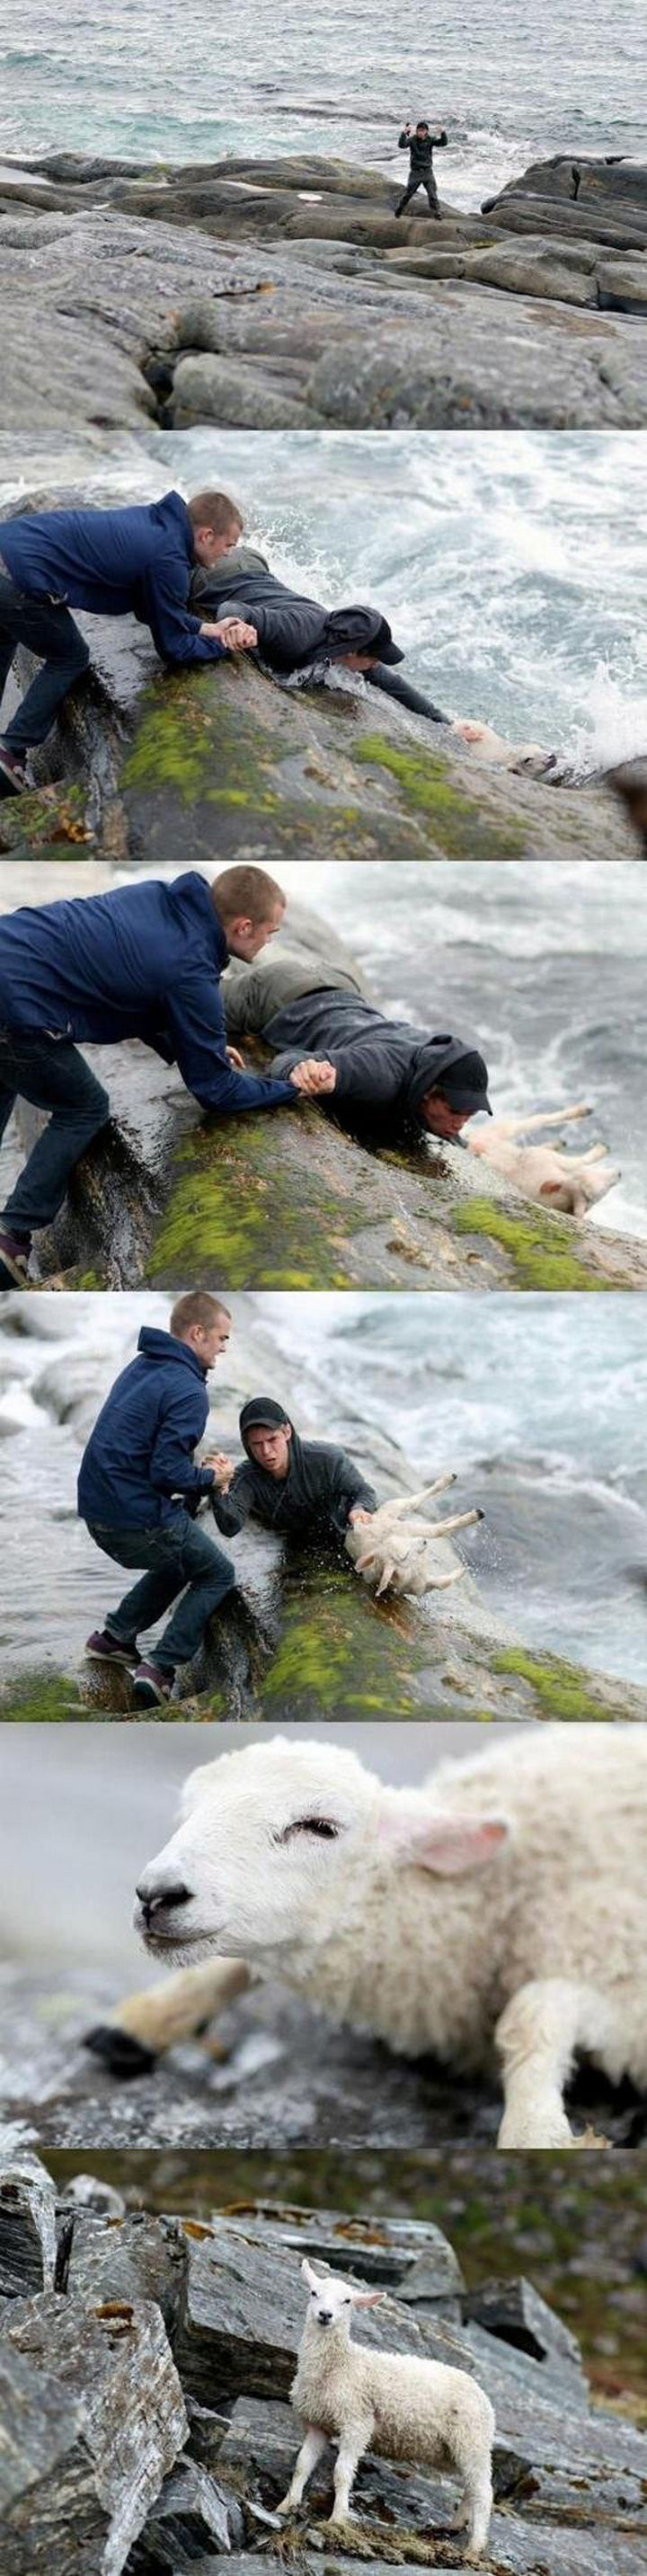 20 Photos Will Restore Your Faith In Humanity - Two Norwegian guys rescuing a sheep that accidentally fell into the ocean.